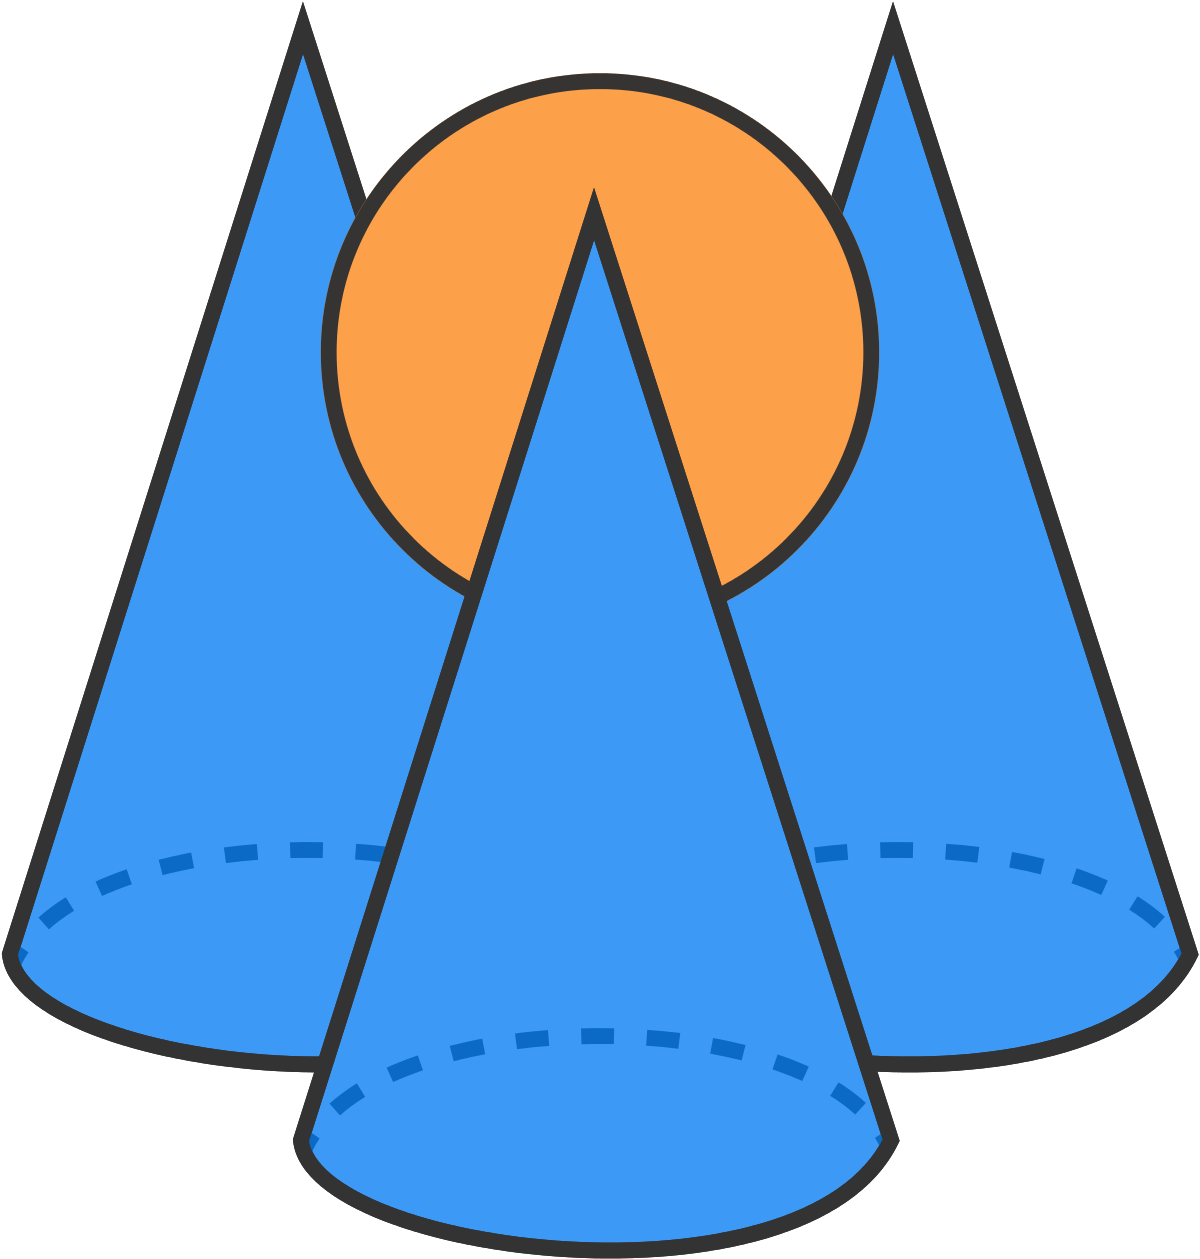 Cone Clipart Geometry Cone Geometry Transparent Free For